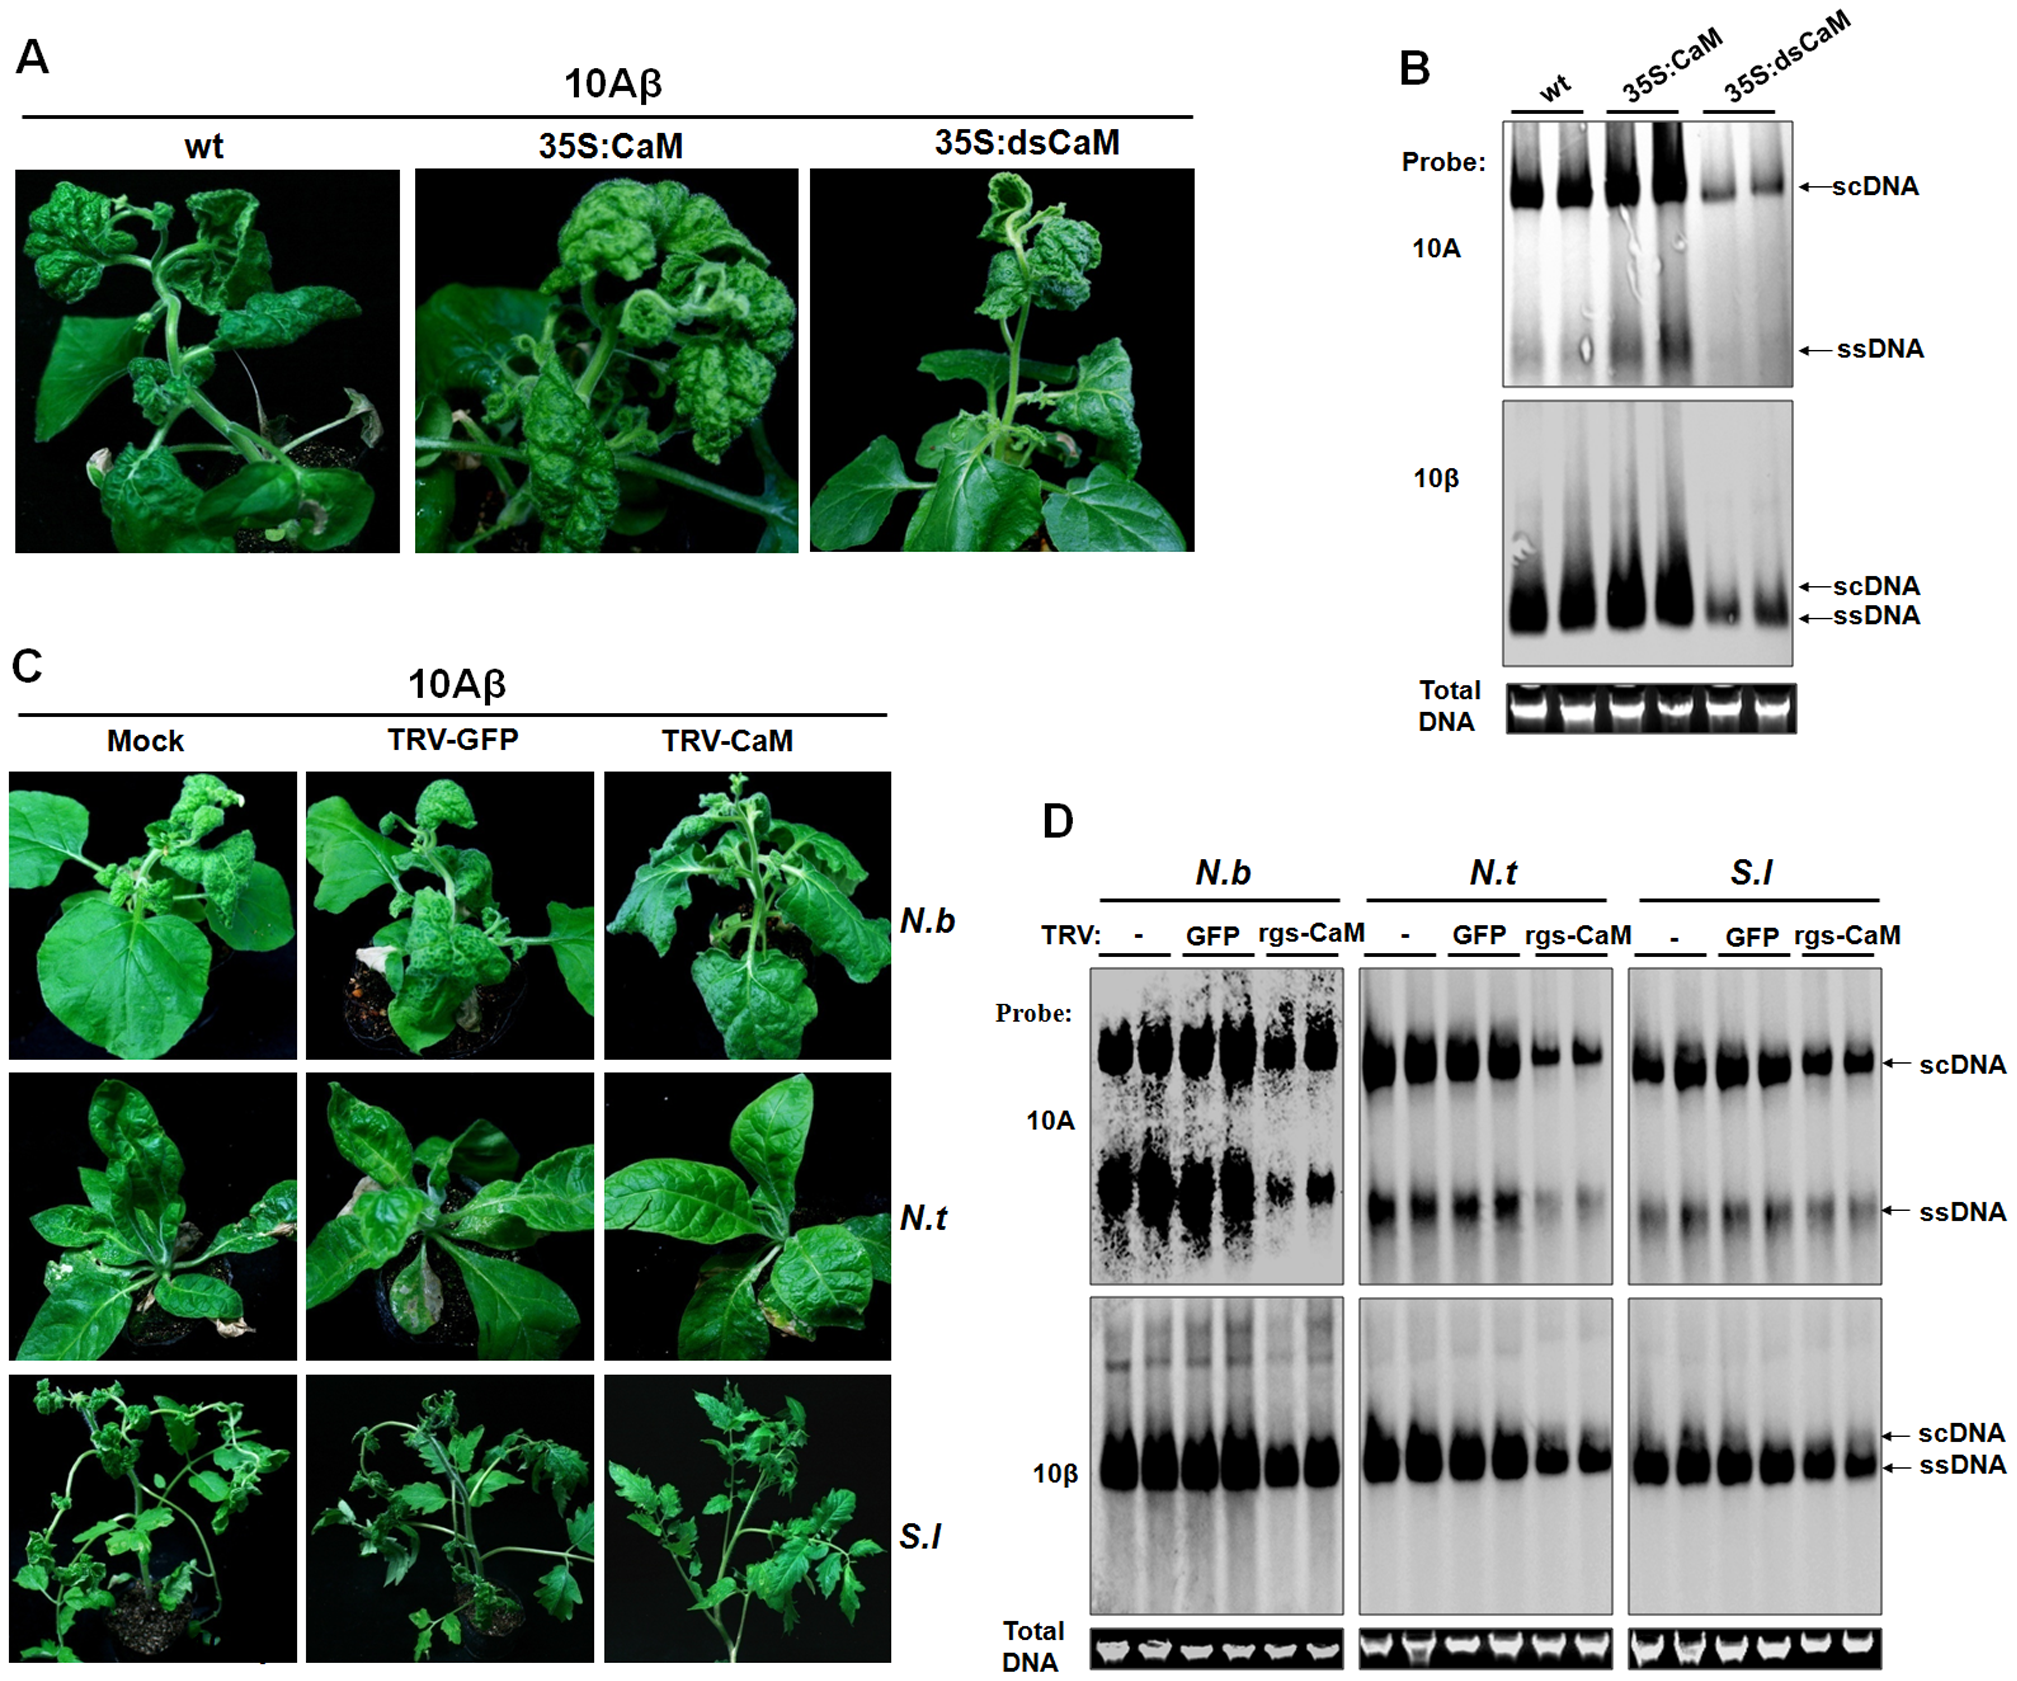 Nbrgs-CaM positively regulated the symptom and accumulation of 10Aβ.